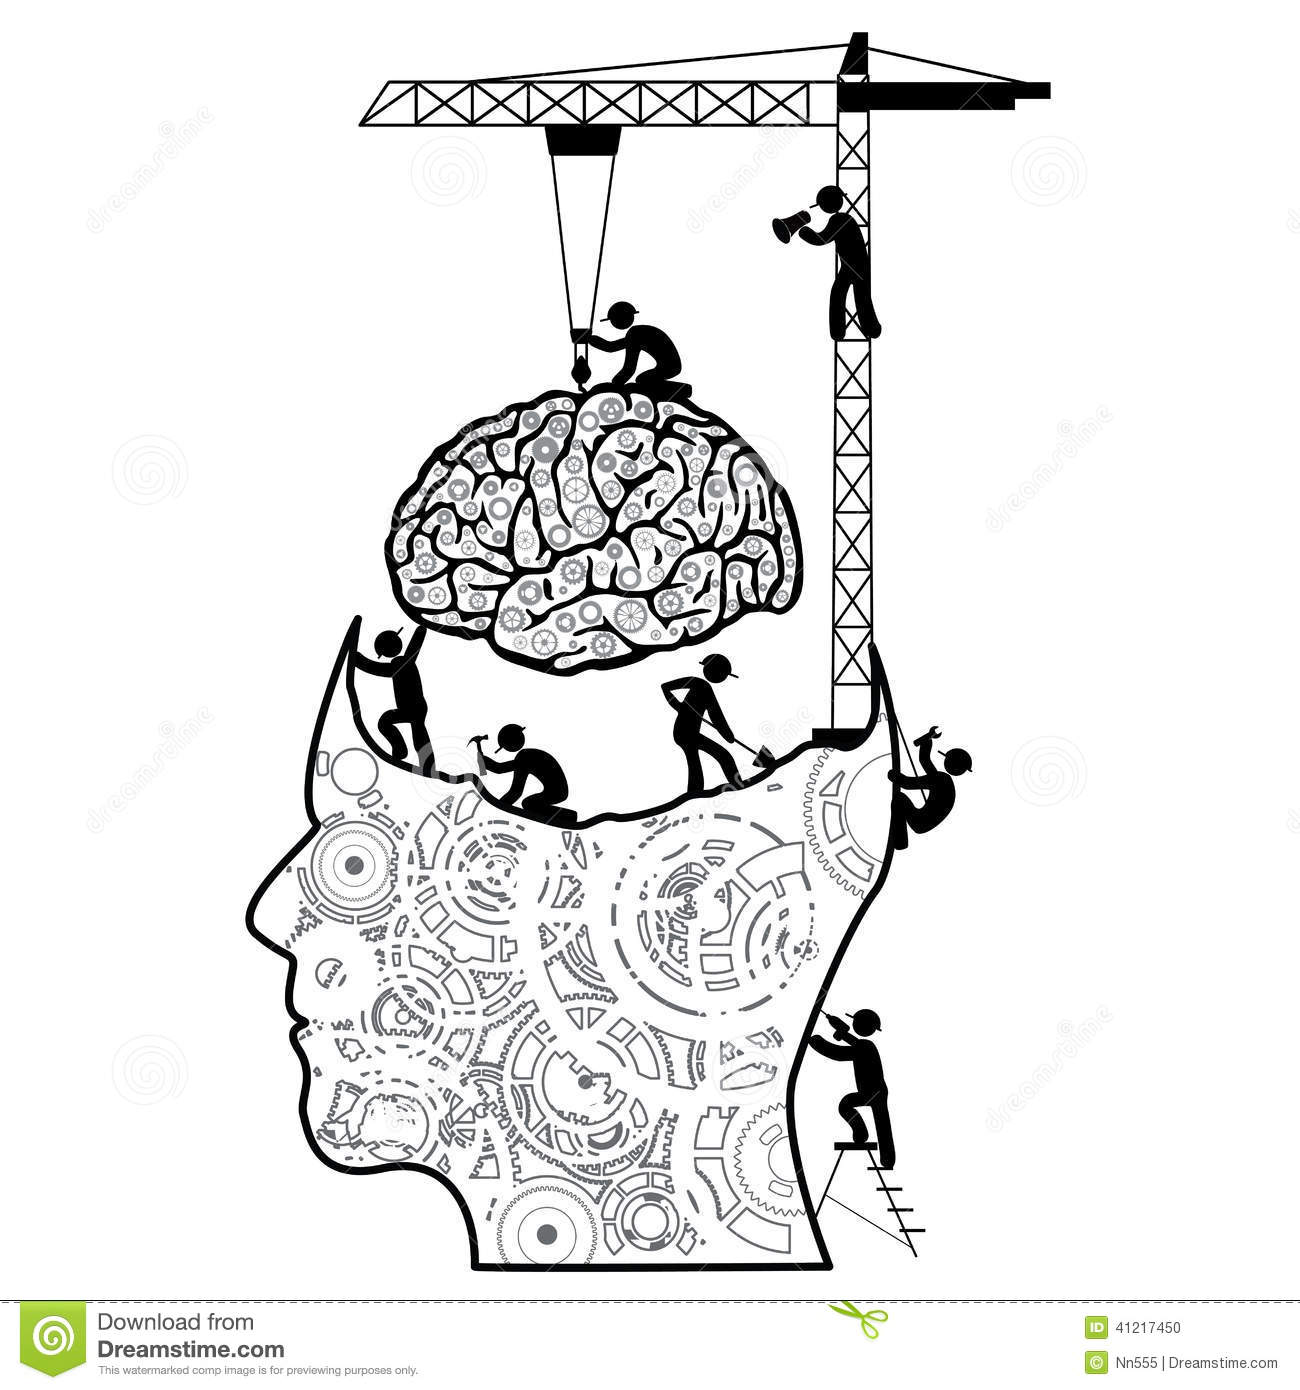 Stock Illustration Brain Under Construction Concept Vector Illustration Human Head Image41217450 together with Wedding Cow Boy Boots Black Adn White Clipart furthermore Stock Illustration Crane Silhouette White Background Vector Image55658720 besides Black And White Vintage Flower Design Element 10 1291090 further Royalty Free Stock Photo Molecule Background Abstract Molecular Dna Structure Vector Illustration Image35005025. on construction clipart